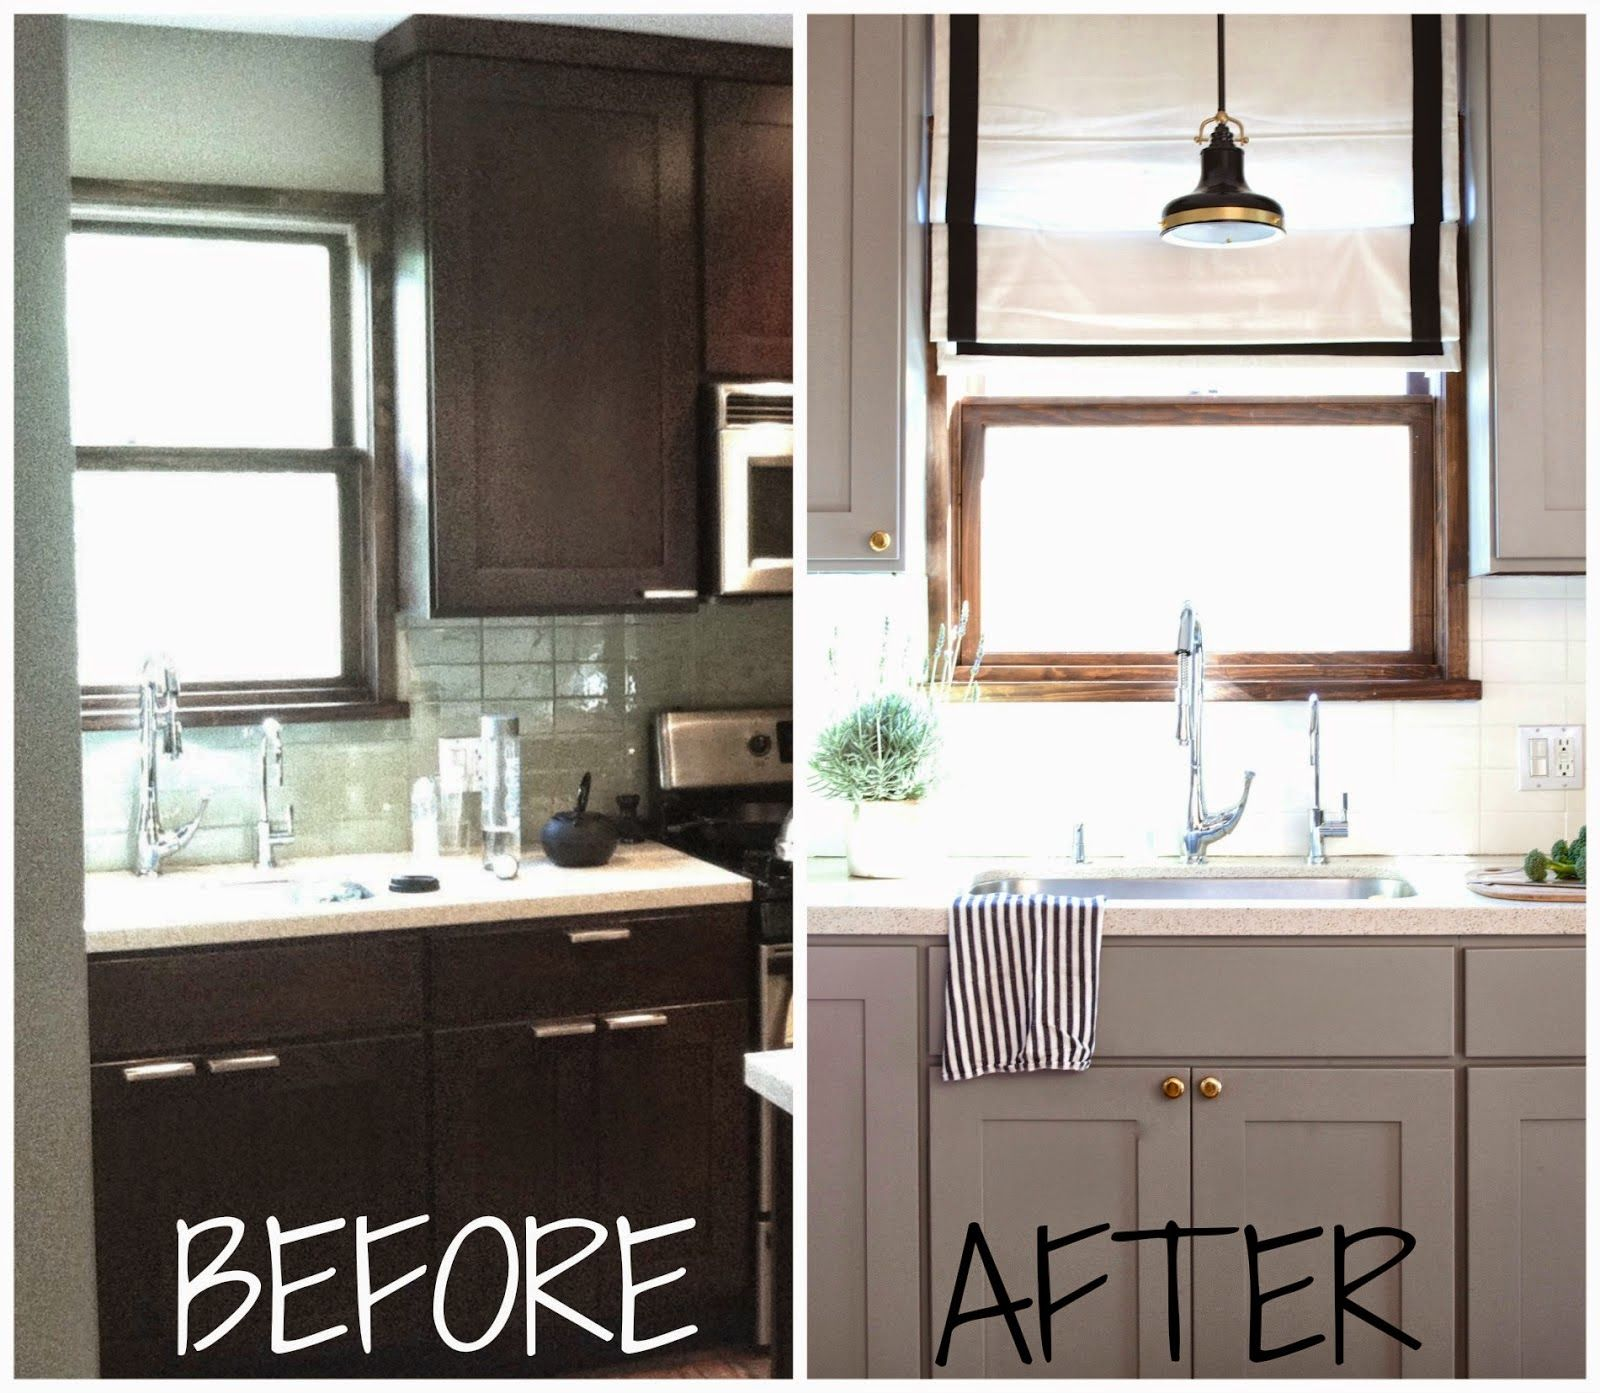 :painted Tile Backsplash Tutorial: Once I'd Settled On